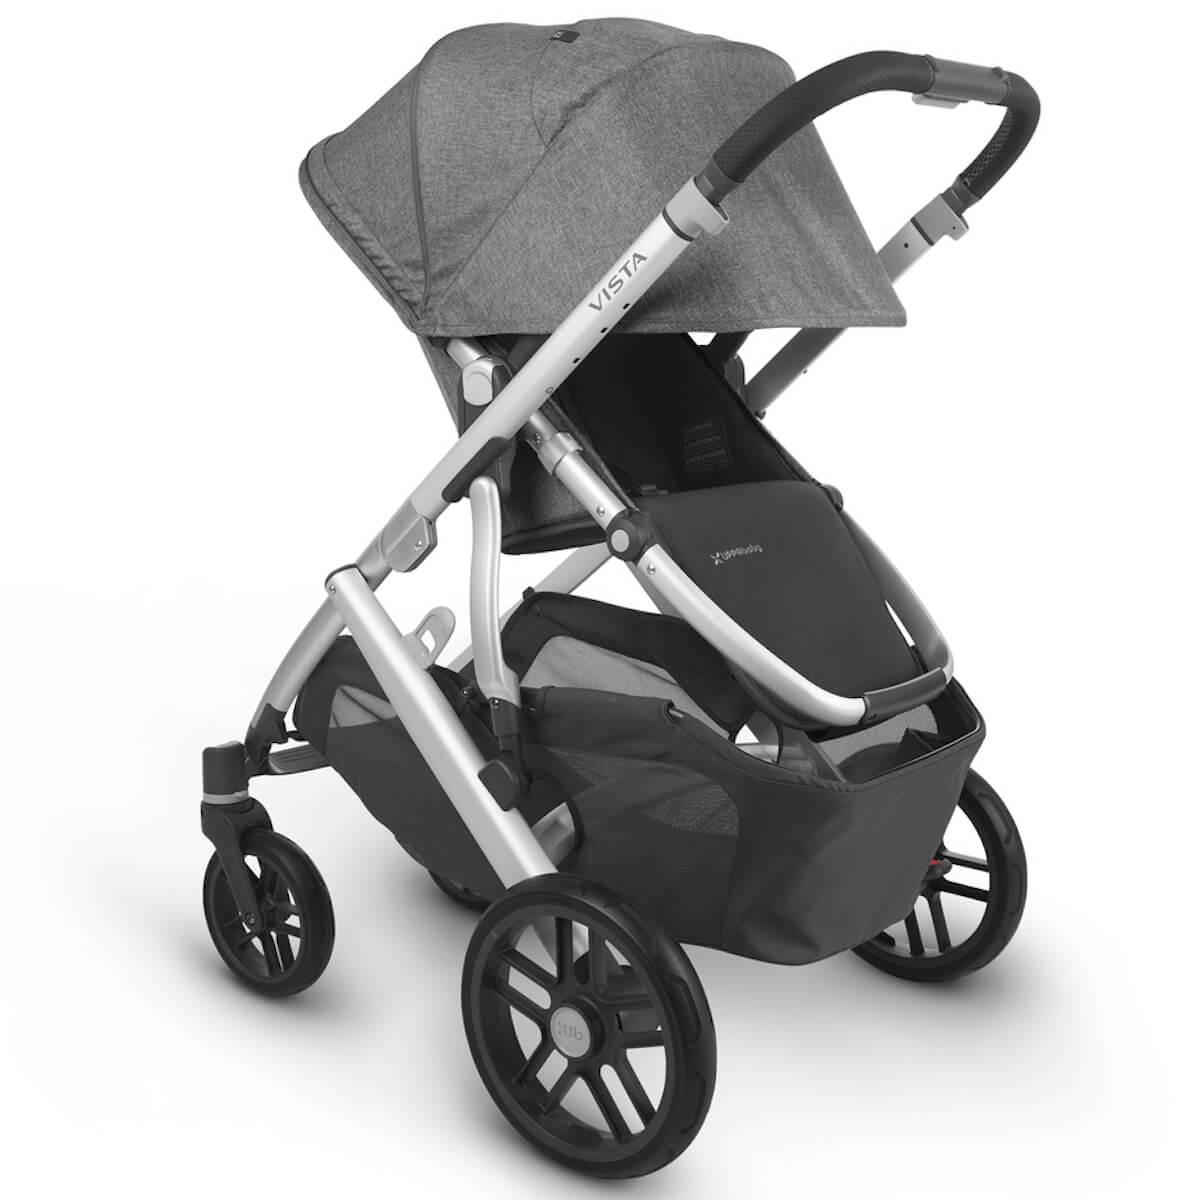 Poussette complète VISTA V2 Uppababy Jordan antraciet melée-silver-saddle leather black